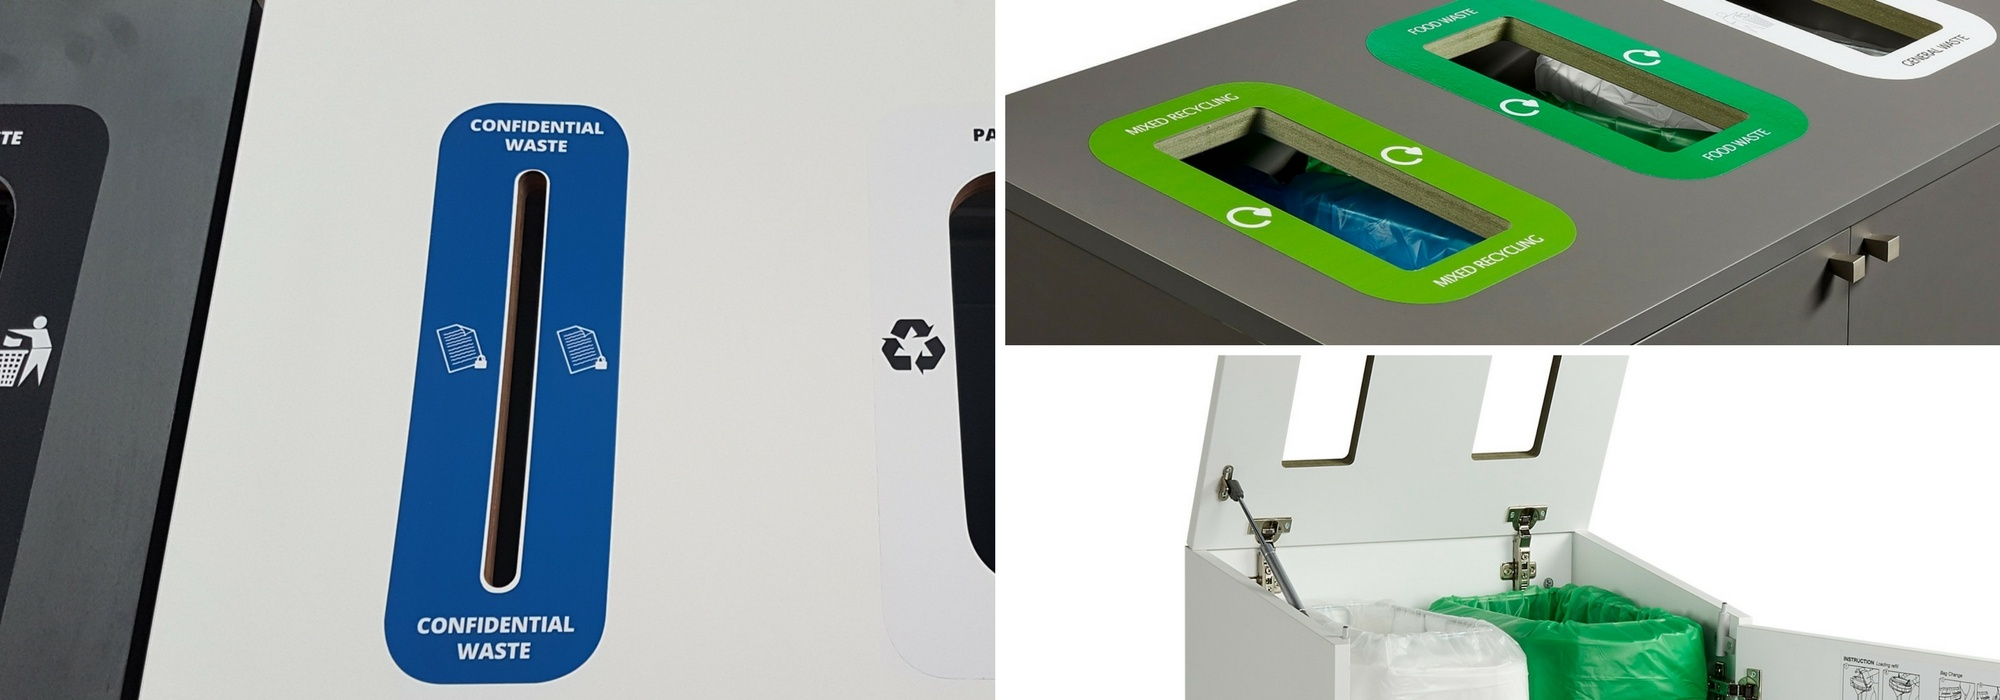 GDPR compliant bespoke recycling station for paper waste